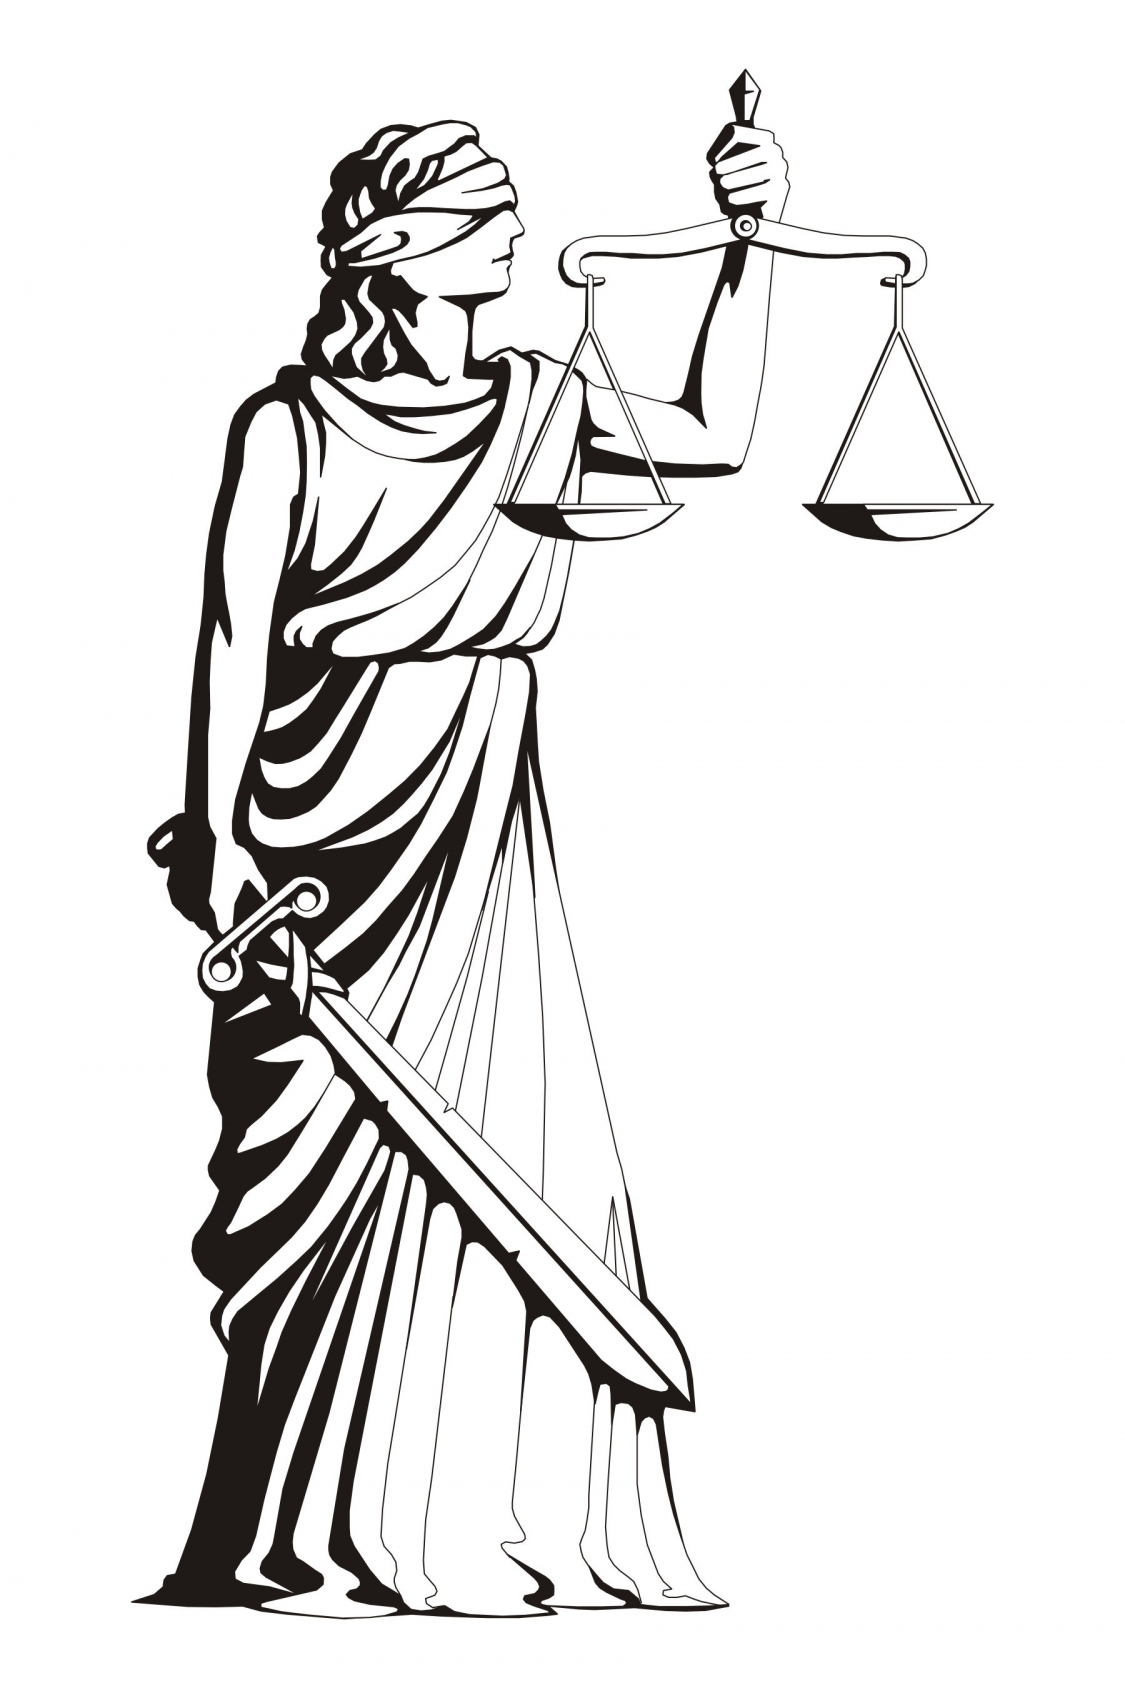 What is justice? What role did social media play